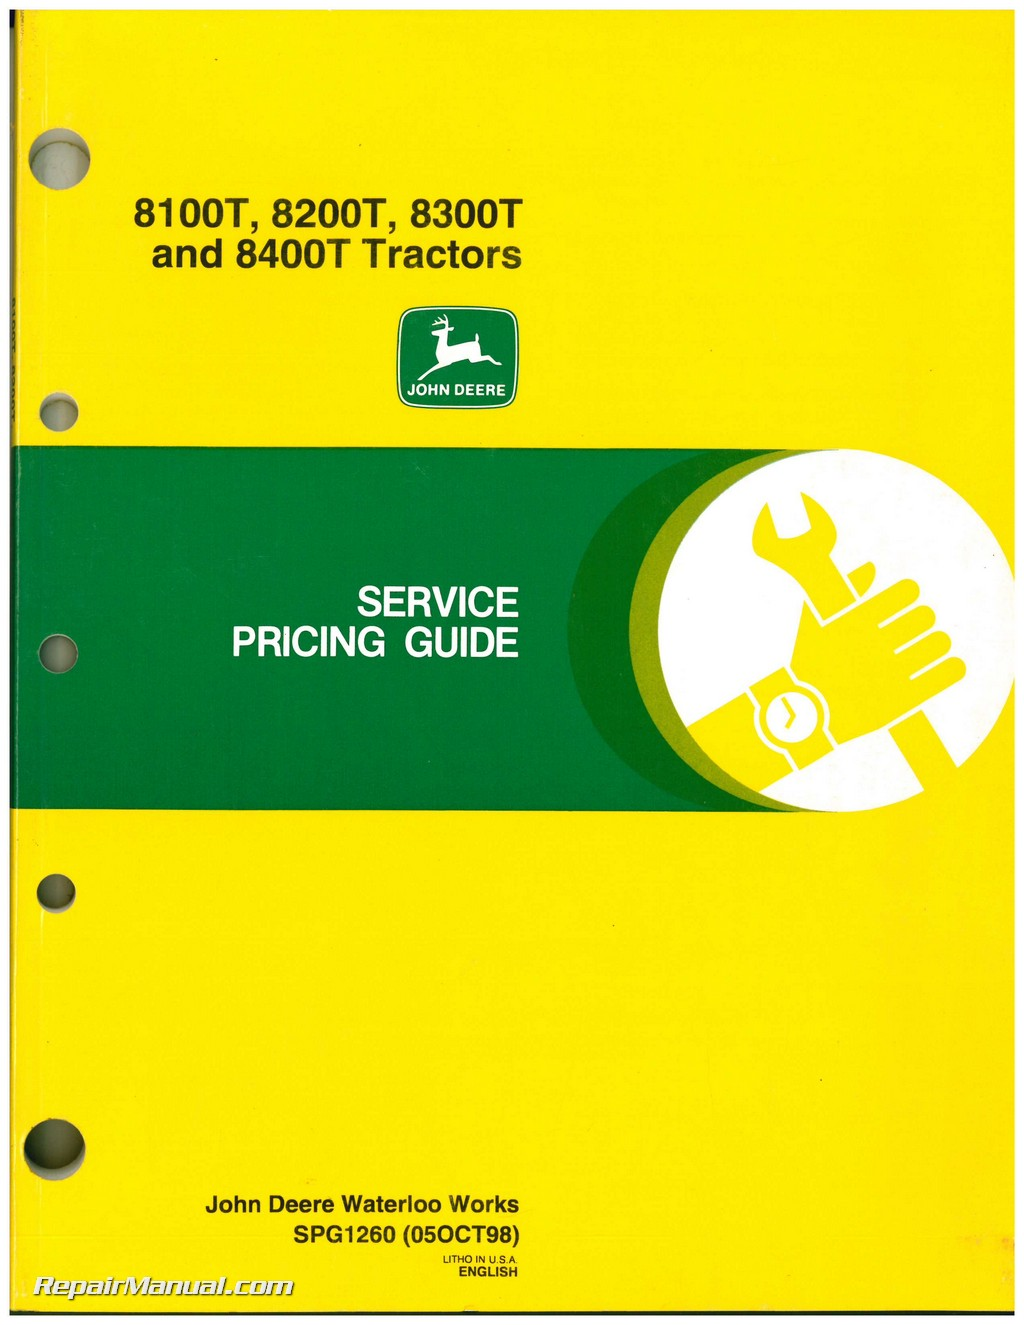 John Deere 8100T, 8200T, 8300T and 8400T Tractors Service Pricing Guide ...